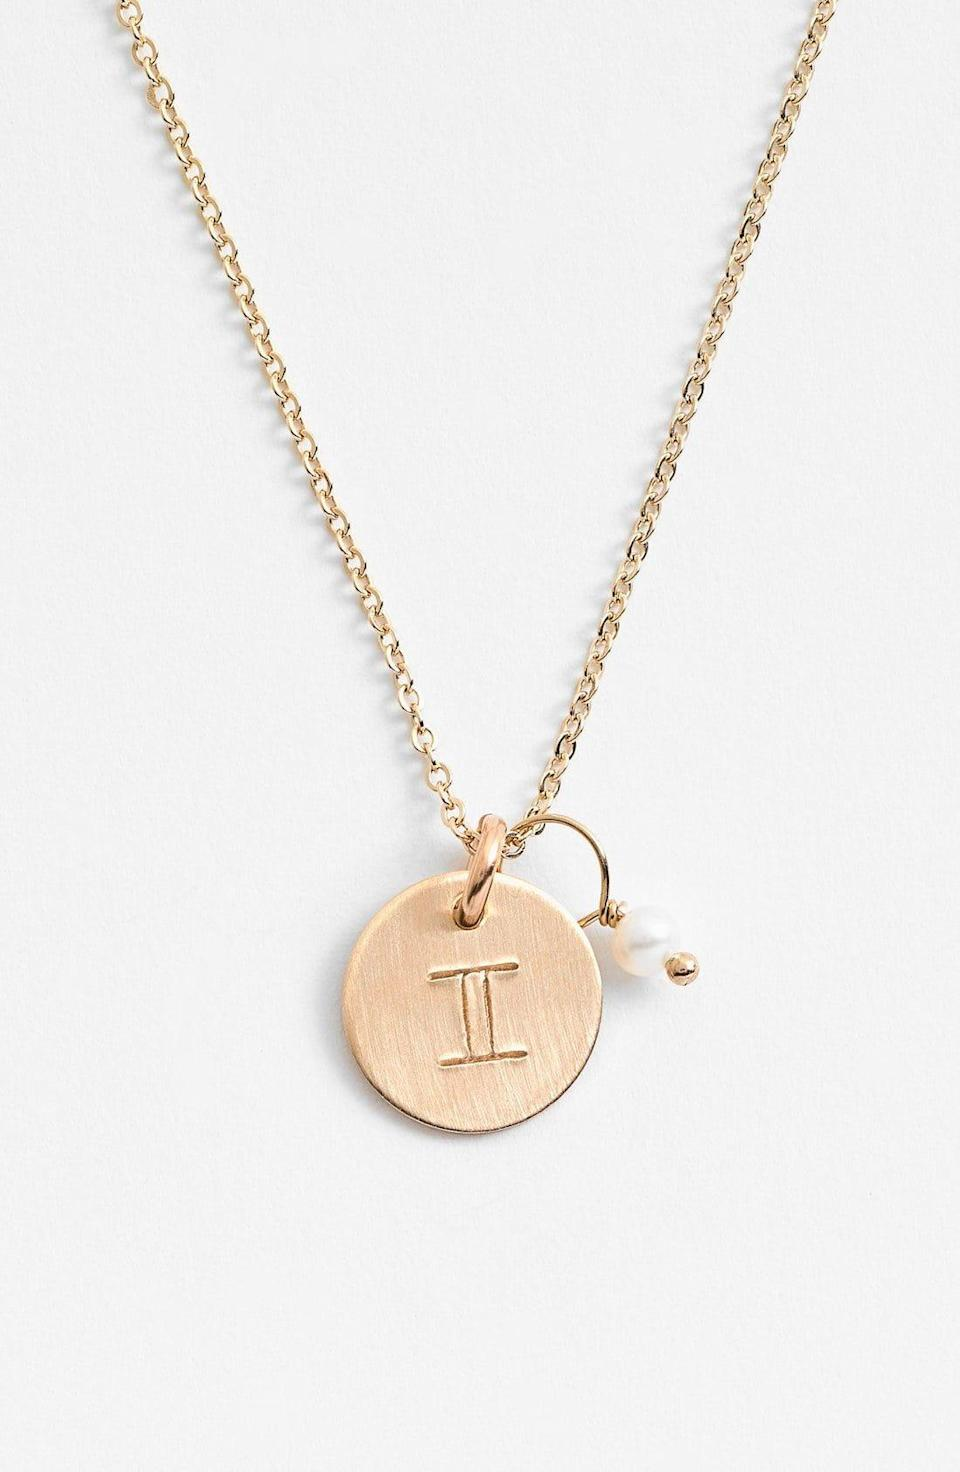 """<p><strong>NASHELLE</strong></p><p>nordstrom.com</p><p><strong>$70.00</strong></p><p><a href=""""https://go.redirectingat.com?id=74968X1596630&url=https%3A%2F%2Fwww.nordstrom.com%2Fs%2Fnashelle-14k-gold-fill-semiprecious-birthstone-zodiac-mini-disc-necklace%2F3818518&sref=https%3A%2F%2Fwww.cosmopolitan.com%2Flifestyle%2Fg31699444%2Fgemini-gift-guide%2F"""" rel=""""nofollow noopener"""" target=""""_blank"""" data-ylk=""""slk:Shop Now"""" class=""""link rapid-noclick-resp"""">Shop Now</a></p><p>Show your pal that being a Gemini is something to brag about! A necklace that showcases the classic symbol of the twins is ideal for a friend who's proud AF to be a Gemini. It's also a fabulous conversation starter for the astro buffs.</p>"""